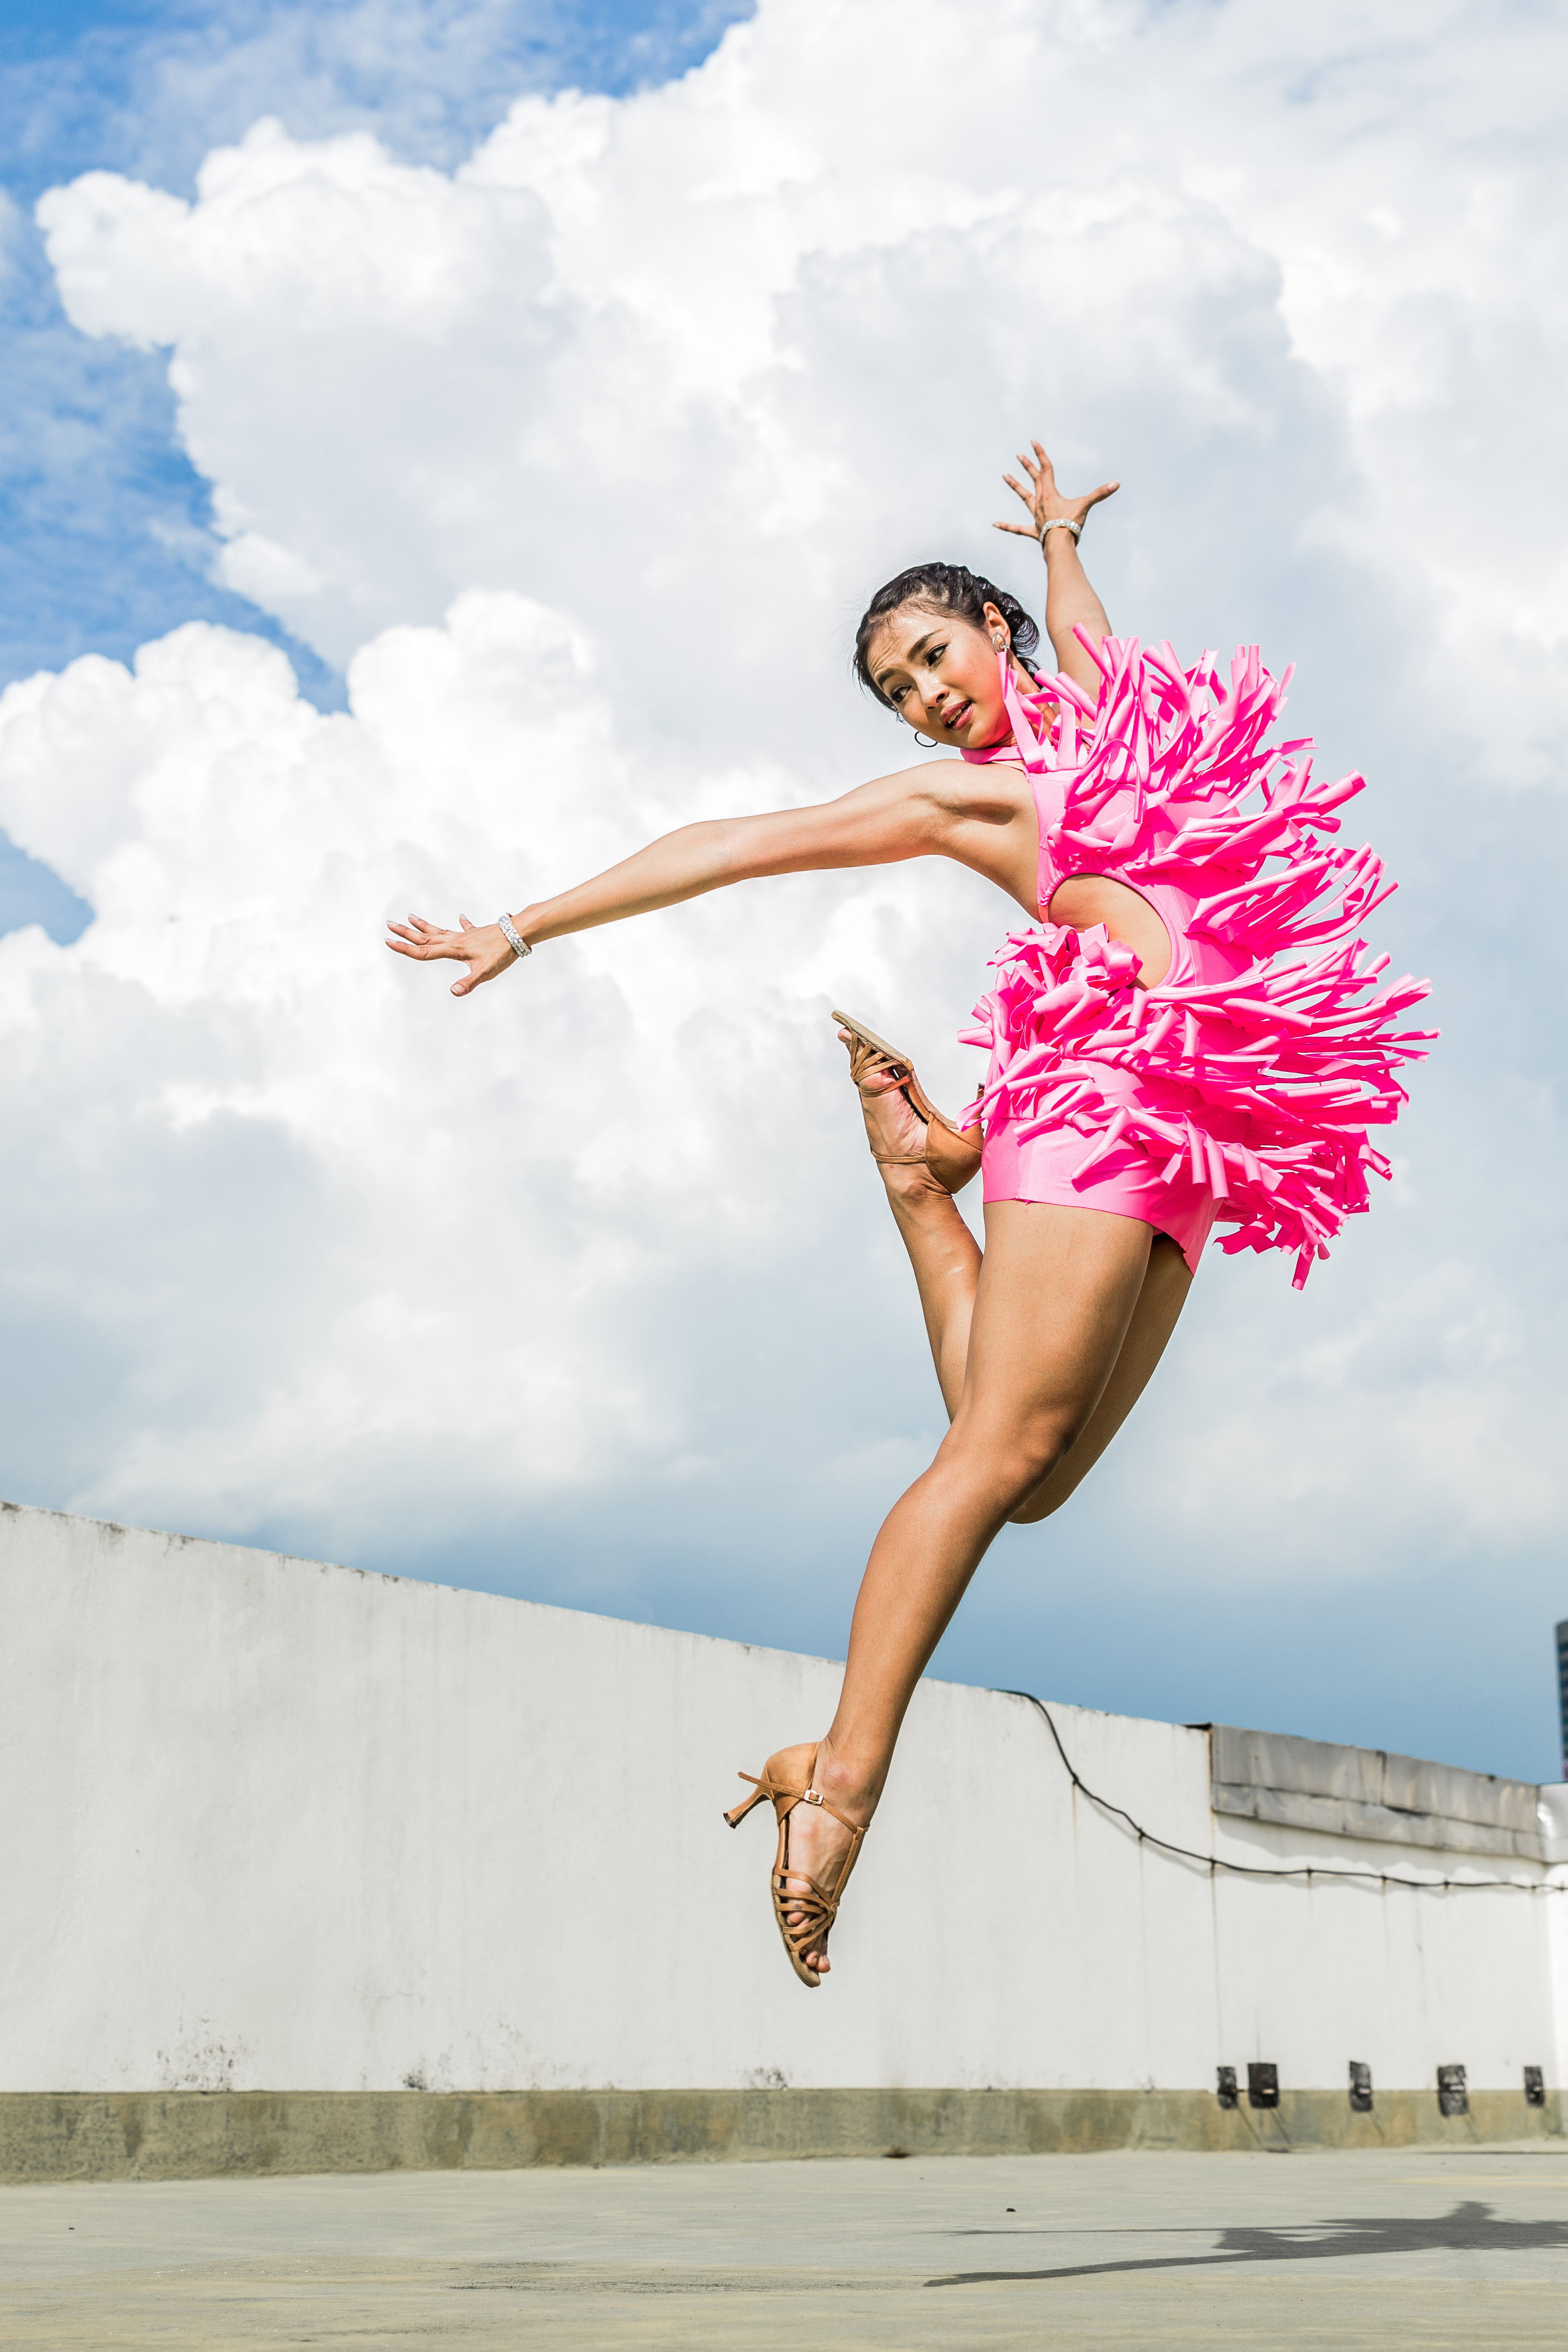 Dancer Jumping In Funny Pink Costume Image Free Stock